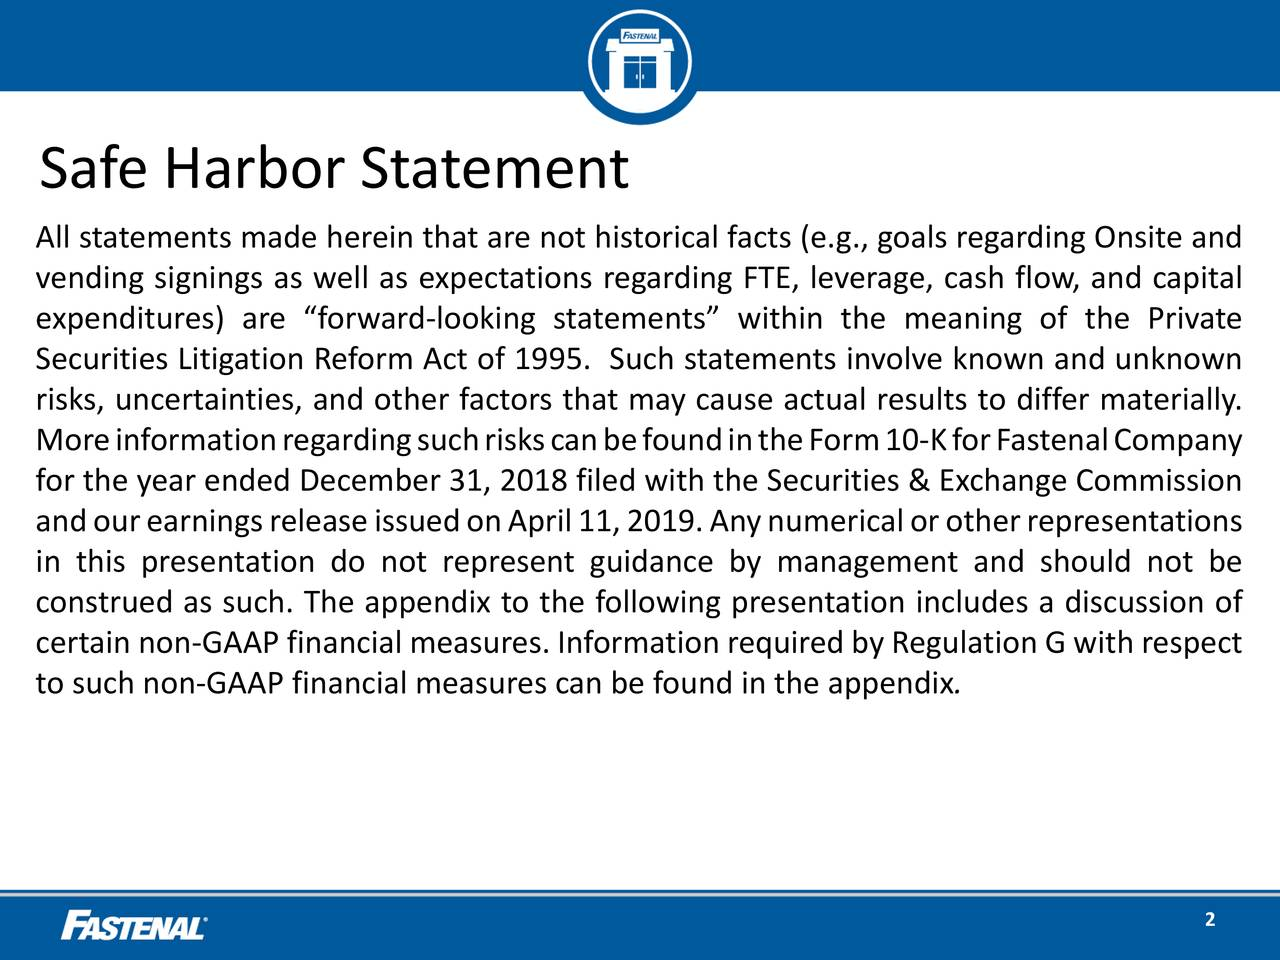 """All statements made herein that are not historical facts (e.g., goals regarding Onsite and vending signings as well as expectations regarding FTE, leverage, cash flow, and capital expenditures) are """"forward-looking statements"""" within the meaning of the Private Securities Litigation Reform Act of 1995. Such statements involve known and unknown risks, uncertainties, and other factors that may cause actual results to differ materially. MoreinformationregardingsuchriskscanbefoundintheForm10-KforFastenalCompany for the year ended December 31, 2018 filed with the Securities & Exchange Commission andourearningsreleaseissuedonApril11,2019.Anynumericalorotherrepresentations in this presentation do not represent guidance by management and should not be construed as such. The appendix to the following presentation includes a discussion of certain non-GAAP financial measures. Information required by Regulation G with respect to such non-GAAP financial measures can be found in the appendix. 2"""